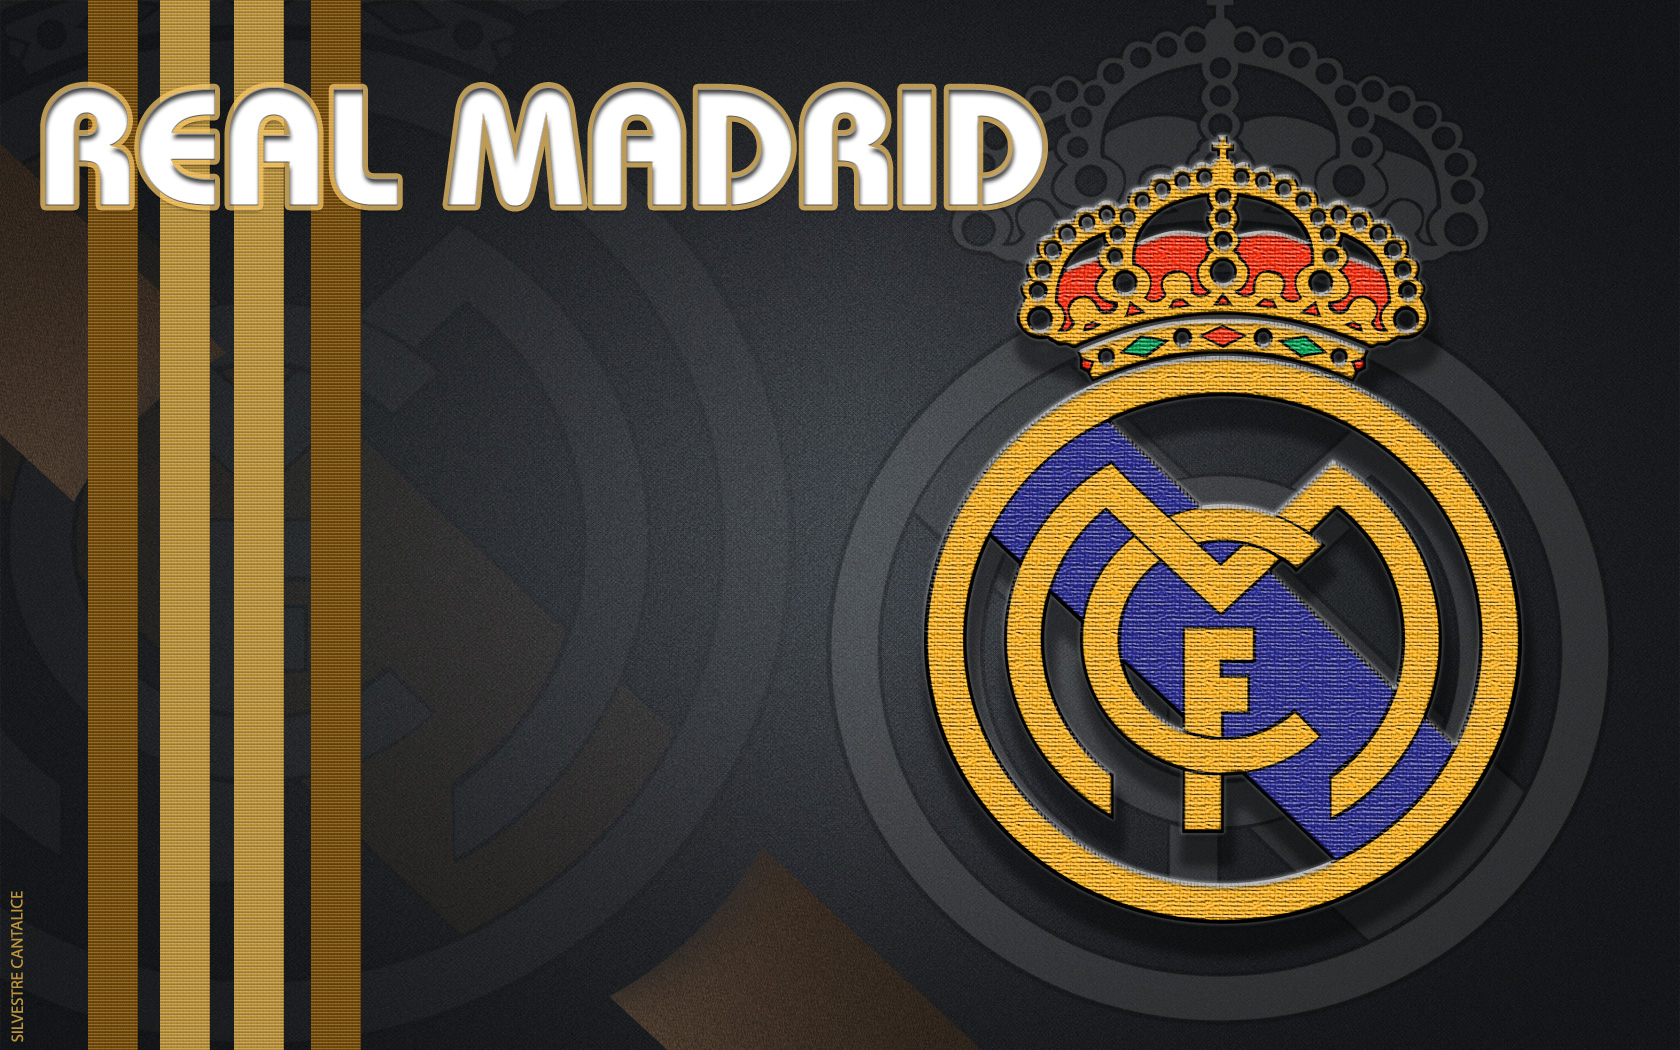 Fondos de pantalla del real madrid wallpapers gratis for Wallpapers hd gratis